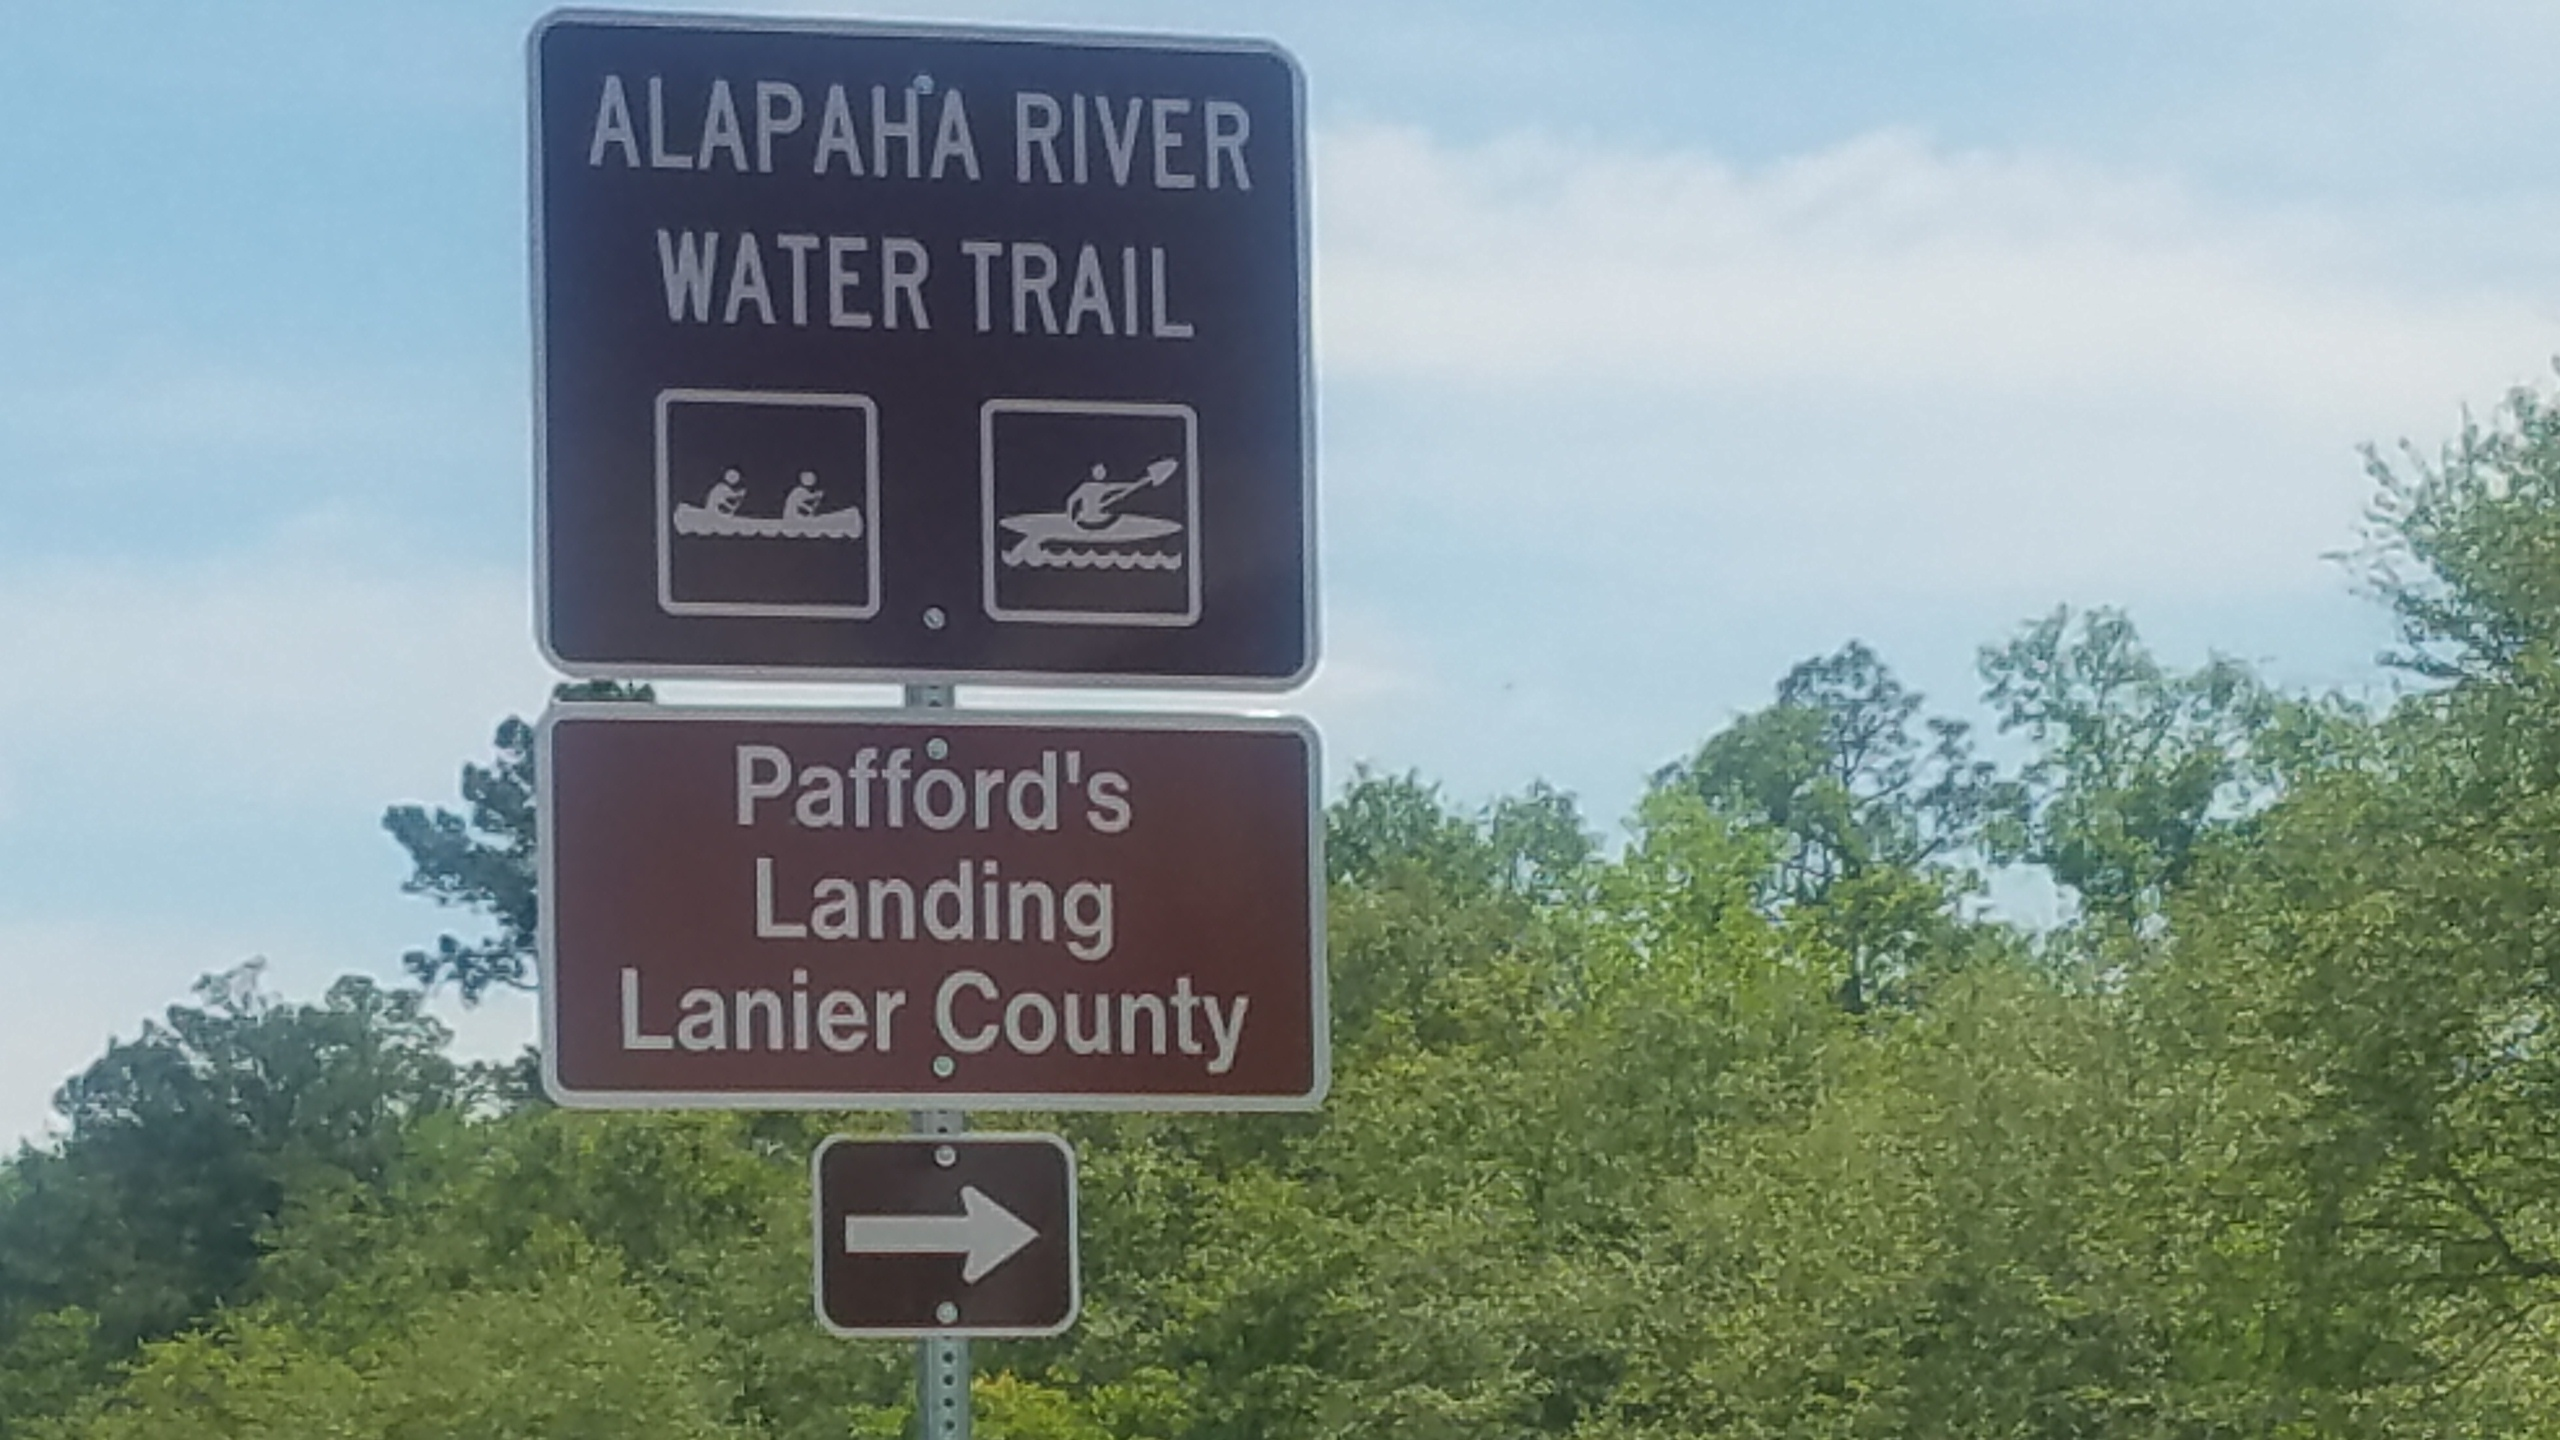 2560x1440 Closeup, Eastbound sign, in Pafford's Landing, Alapaha River Water Trail, by John S. Quarterman, for WWALS.net, 26 April 2018